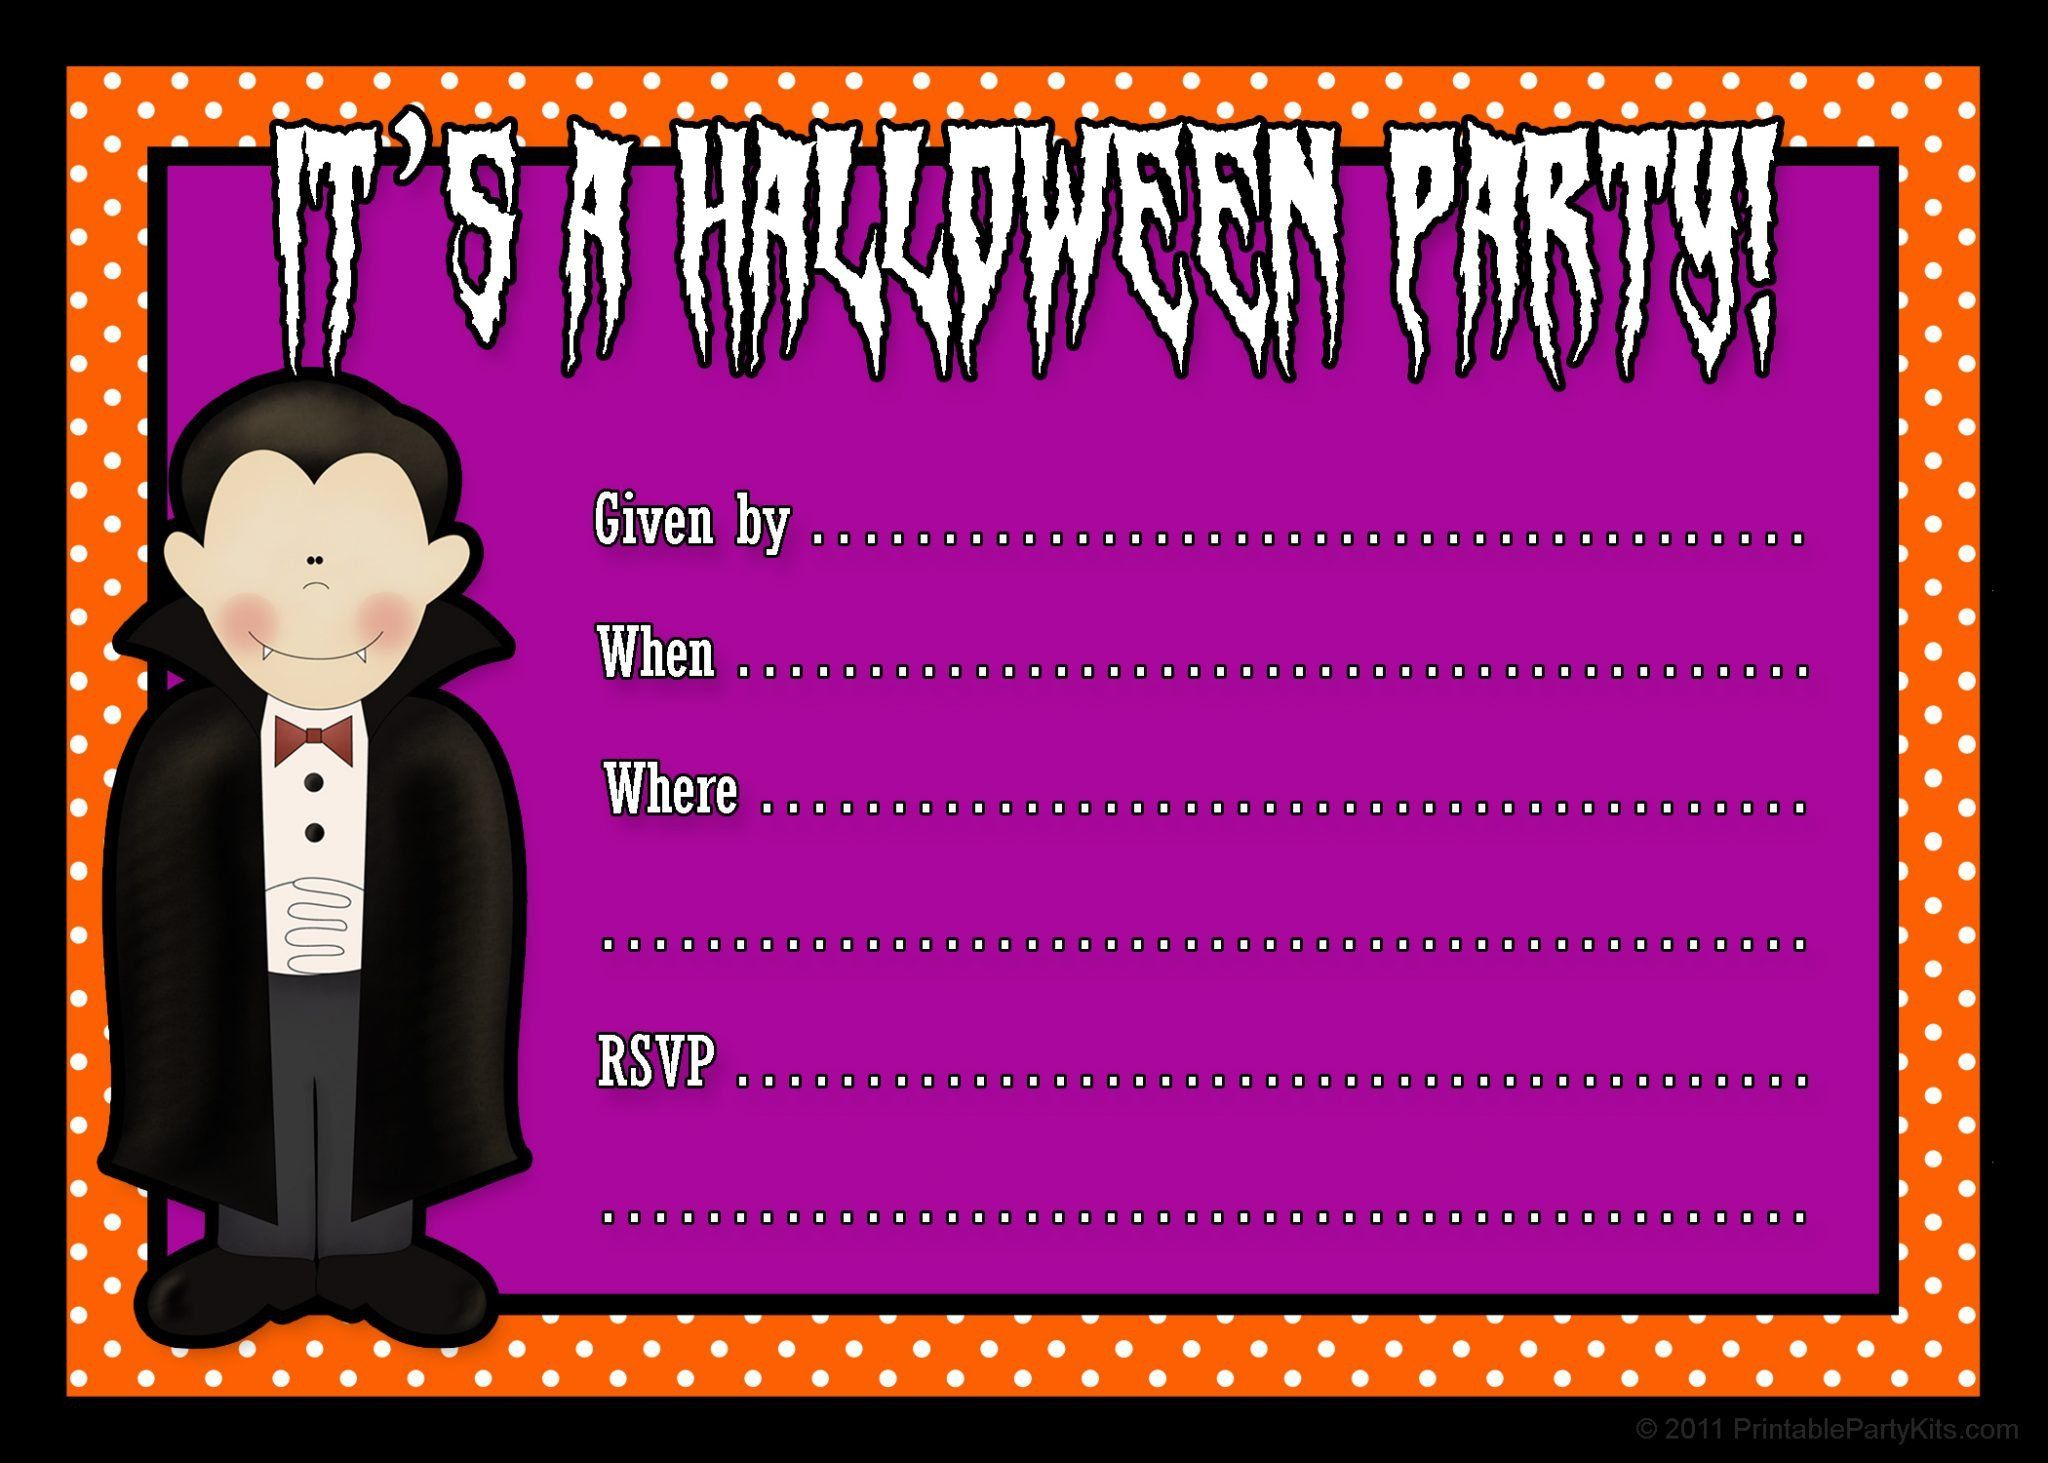 001 Fascinating Free Halloween Party Invitation Template Highest Quality  Templates Download Printable BirthdayFull